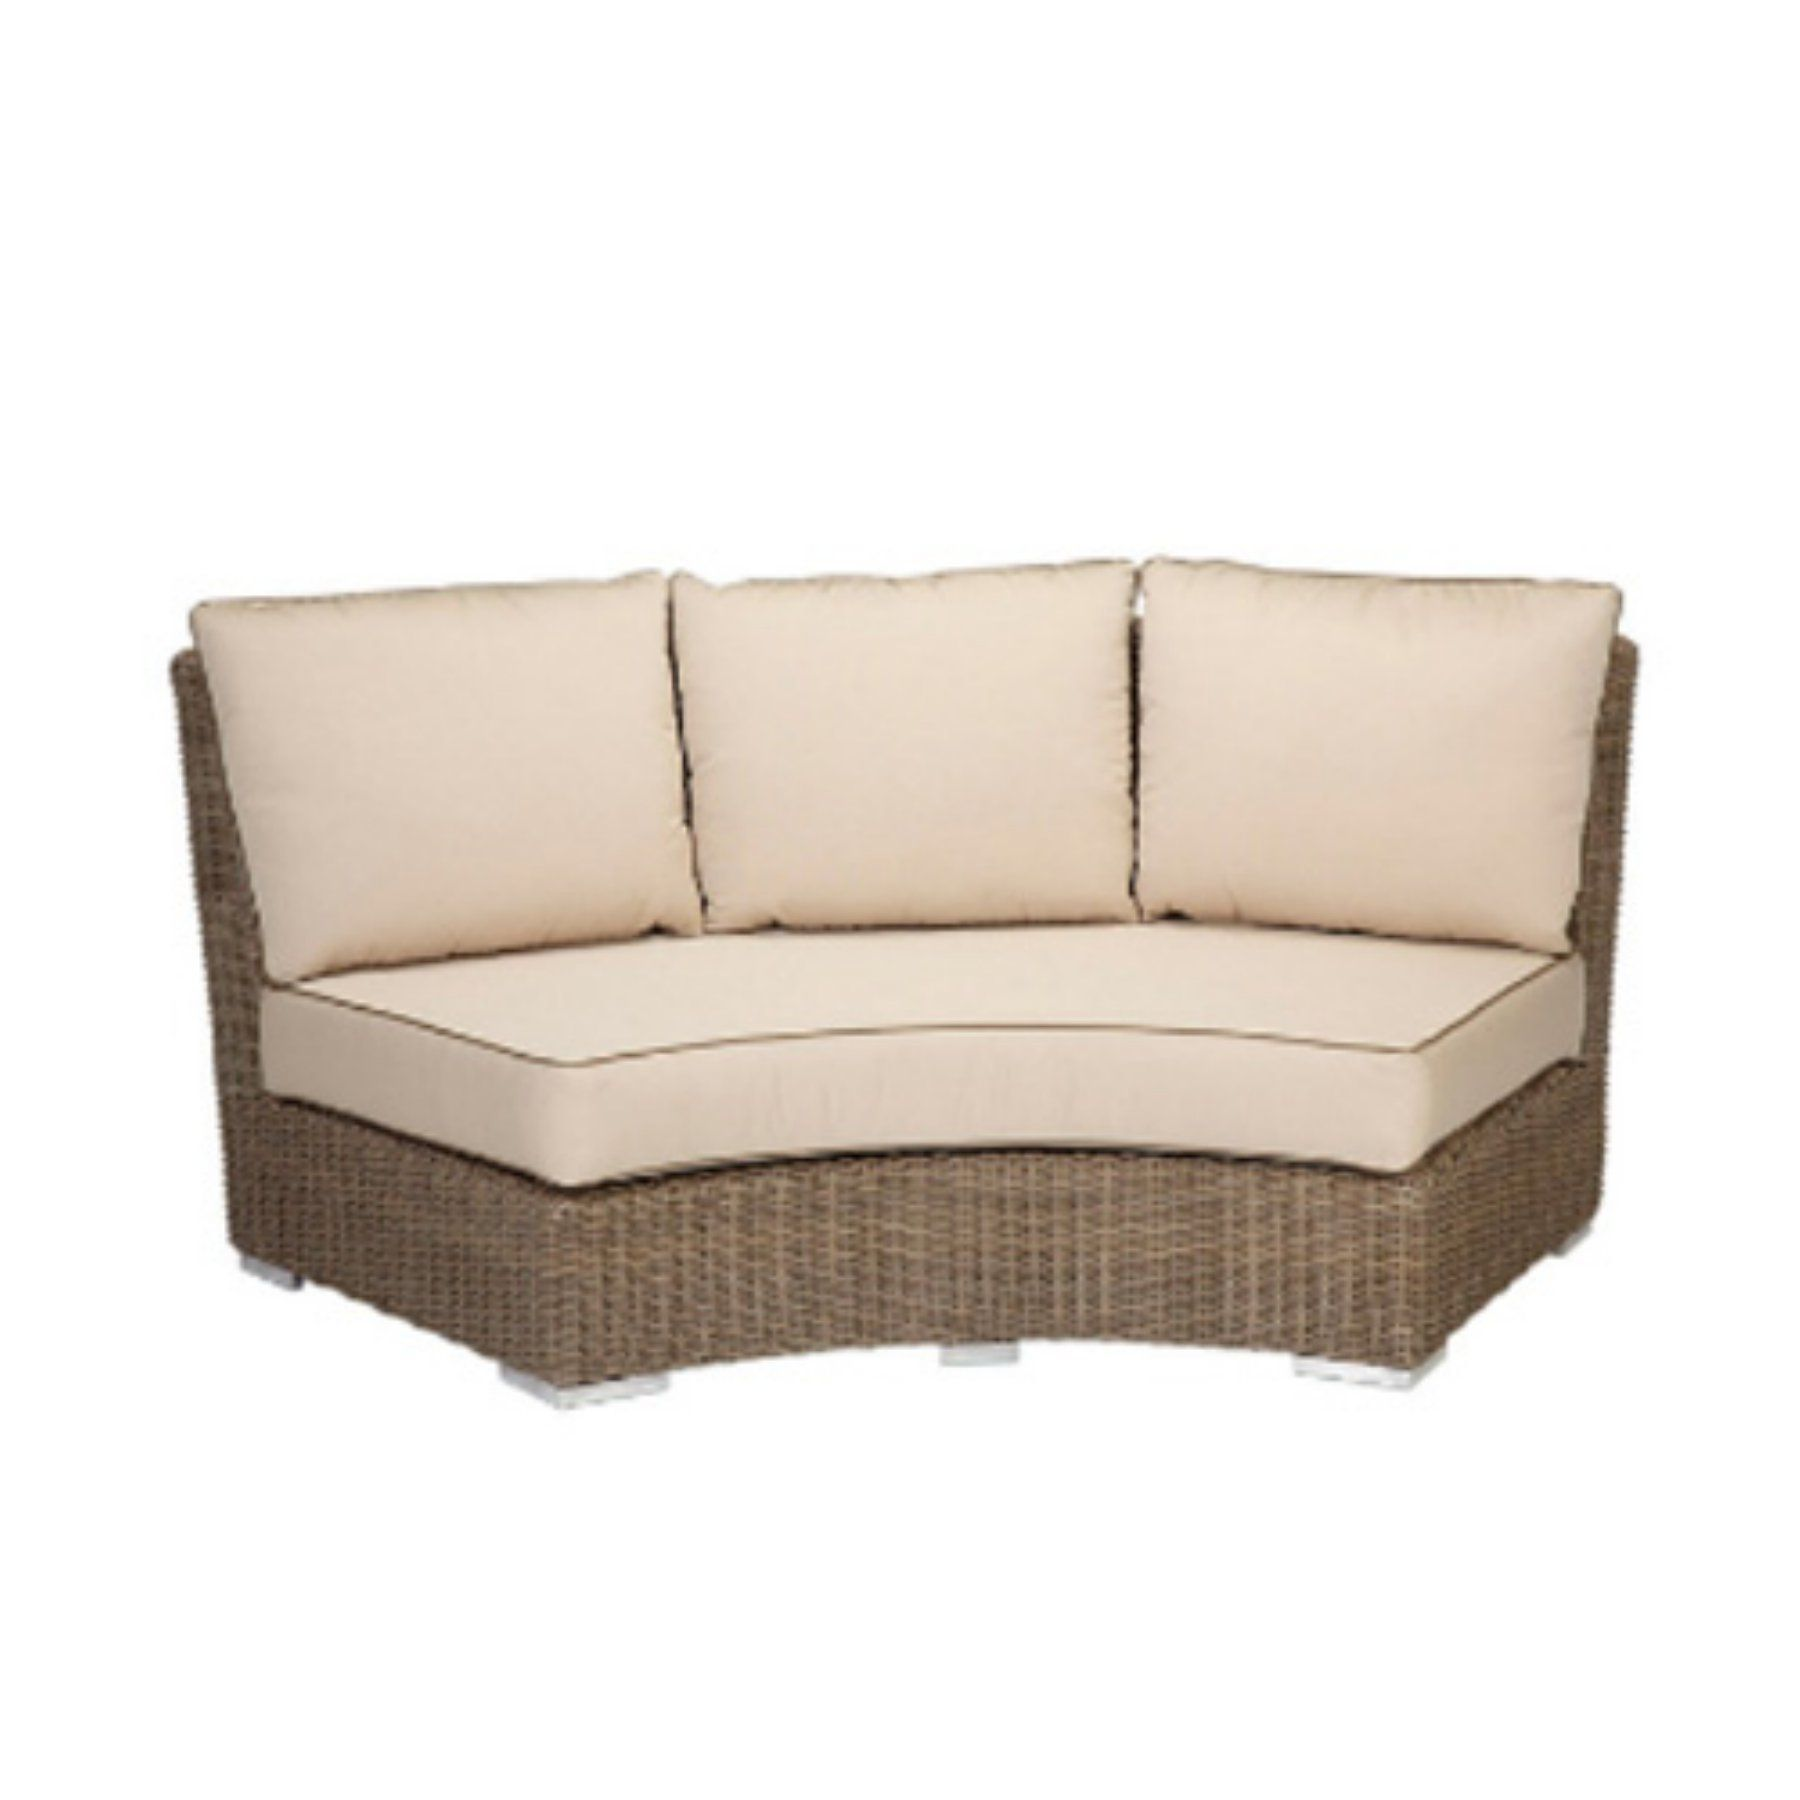 Outdoor Sunset West Coronado Wicker Curved Patio Loveseat 2101